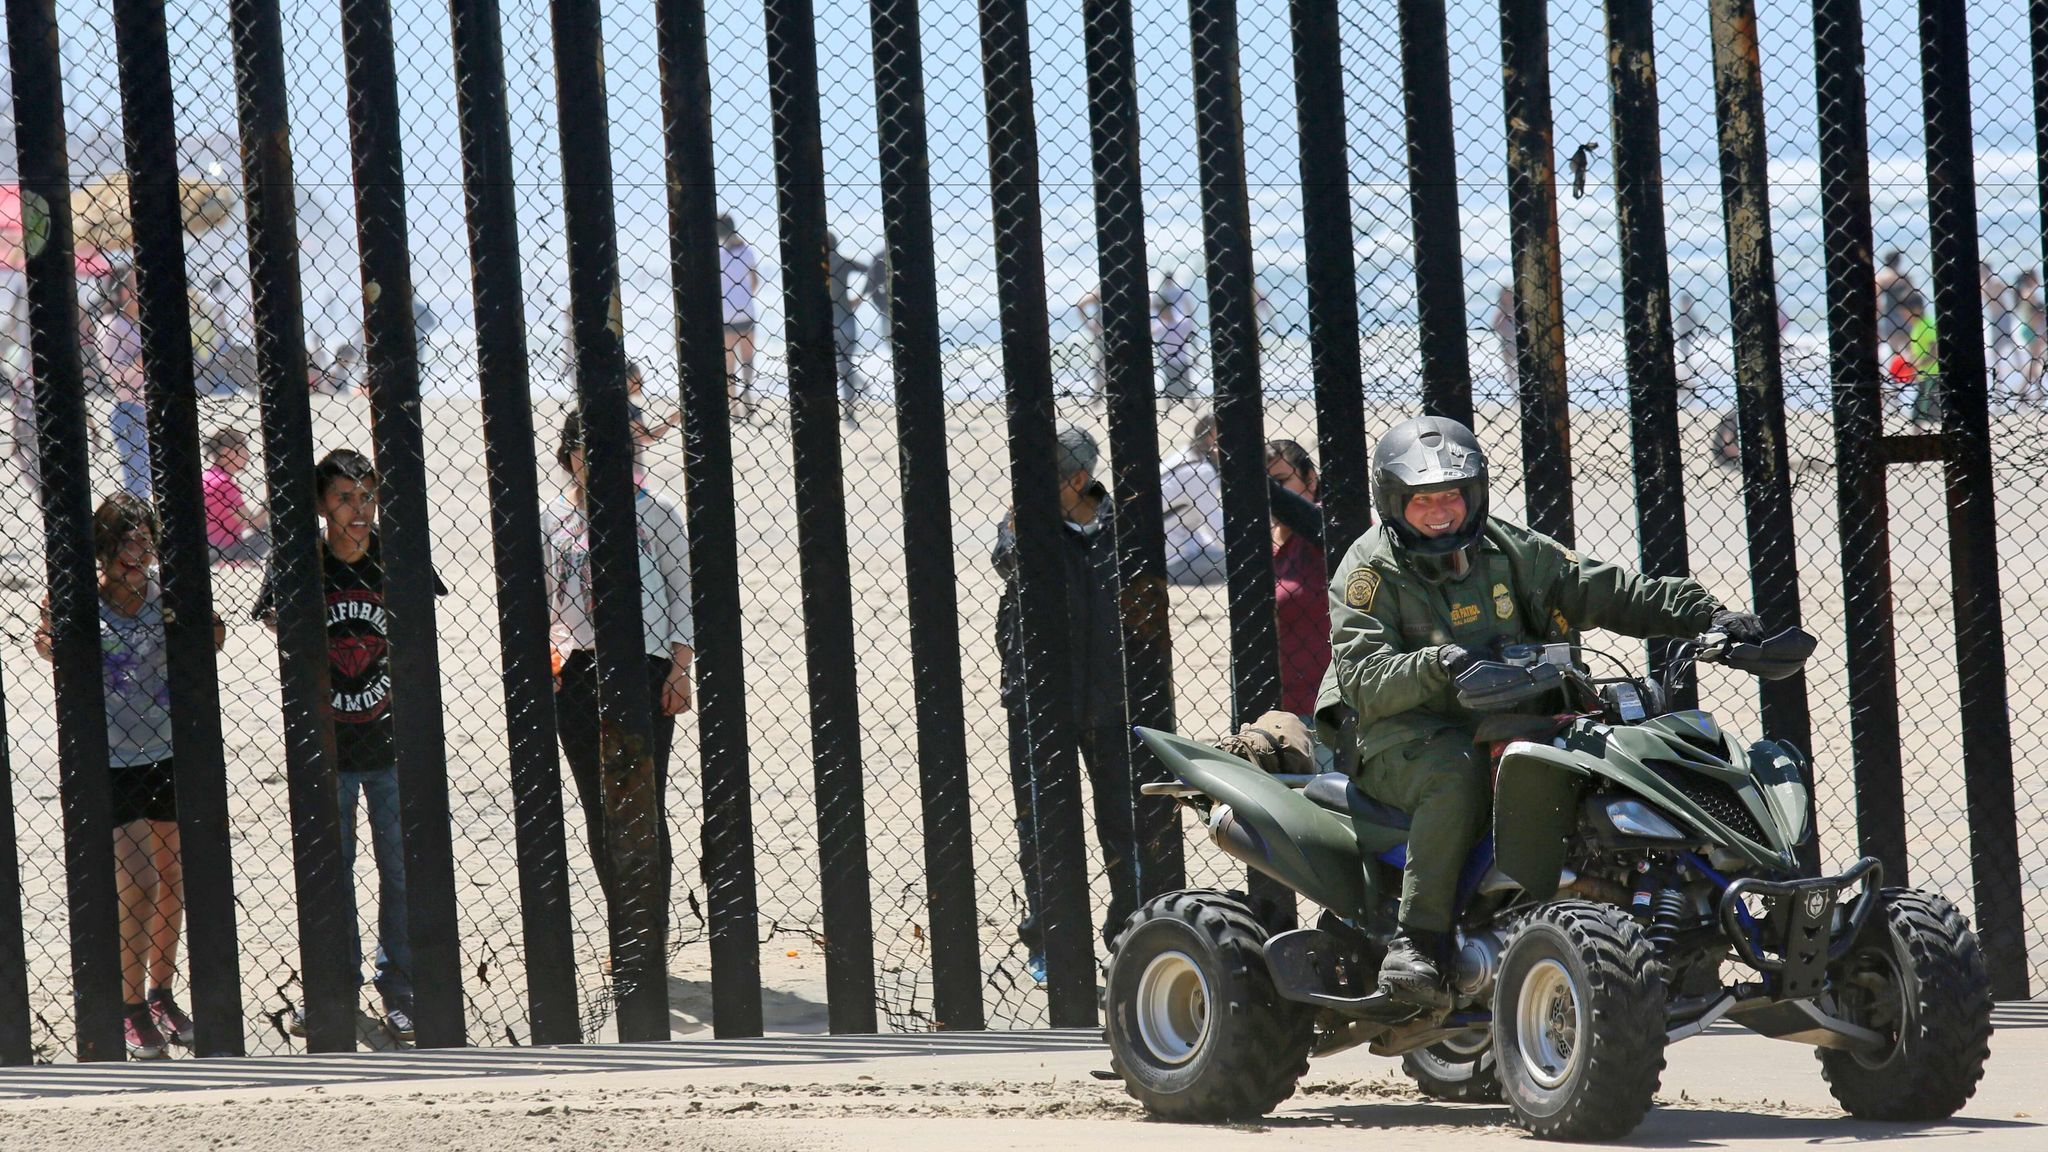 Border Patrol agents patrol the US-Mexico border in San Ysidro, California on April 16, 2017.